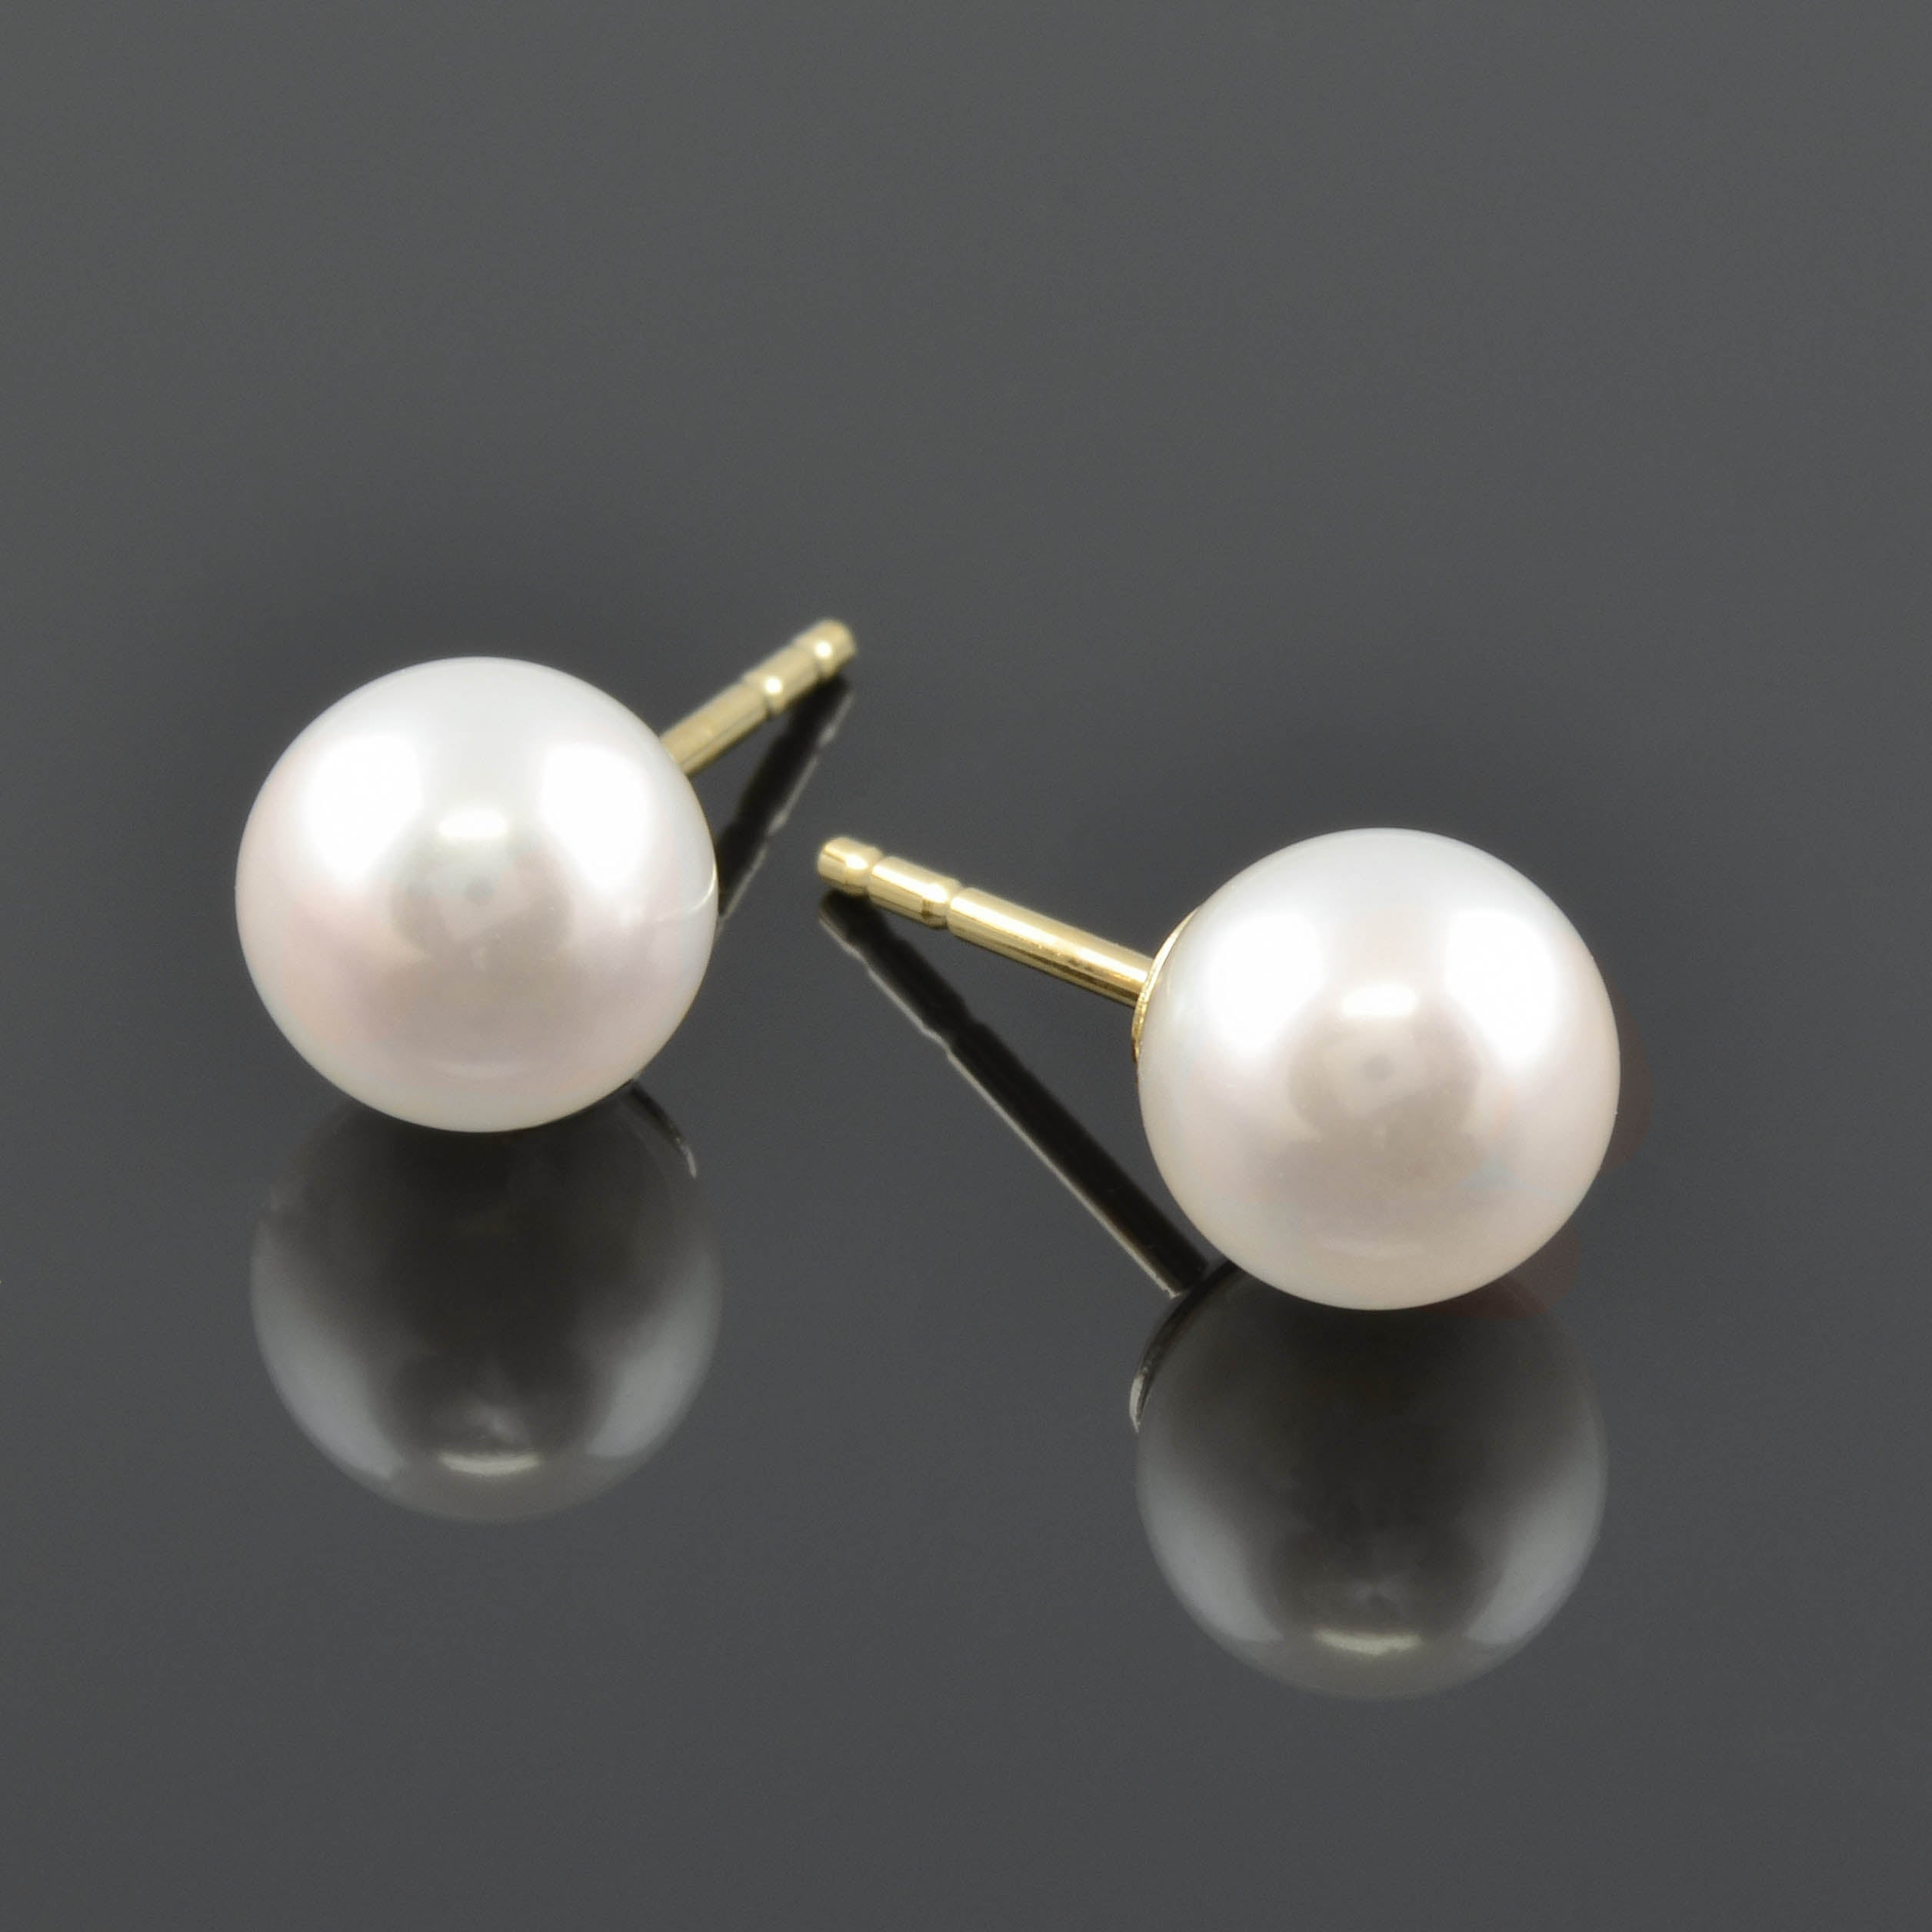 collections handmade jewelry in black island shop pearls real hawaii stud gold earrings pearl online tahitian white